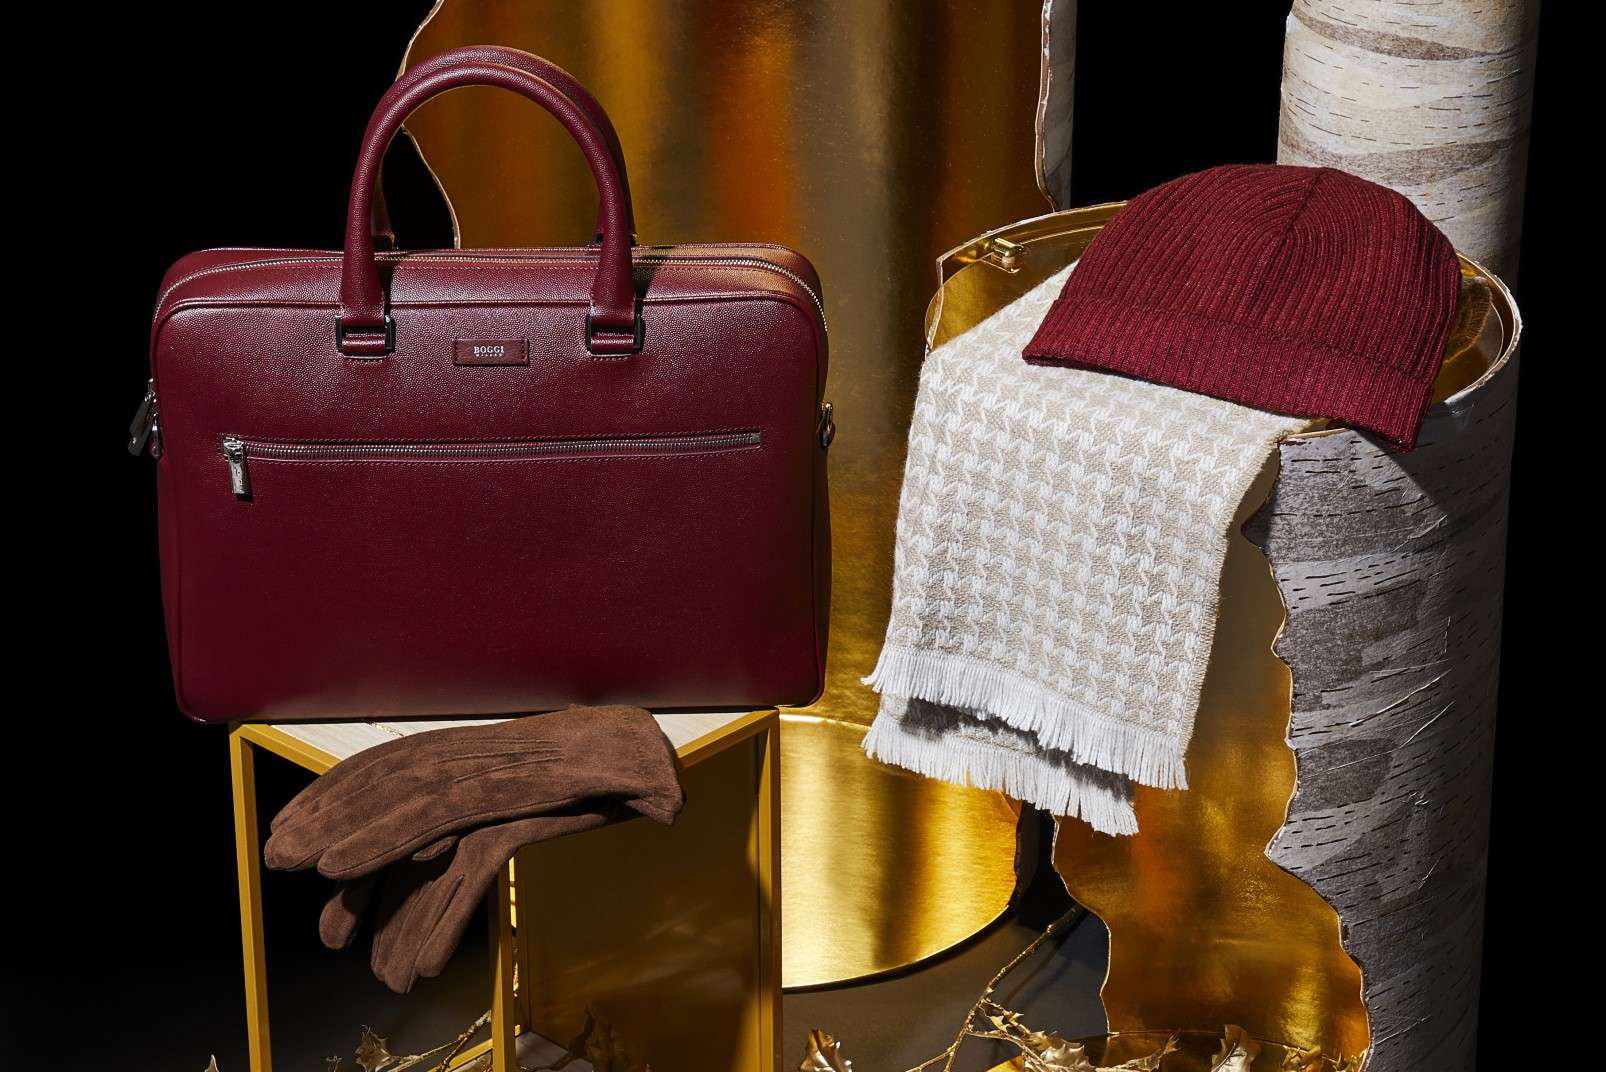 Boggi Milano gifts for a Gentleman - accessories and leatherware